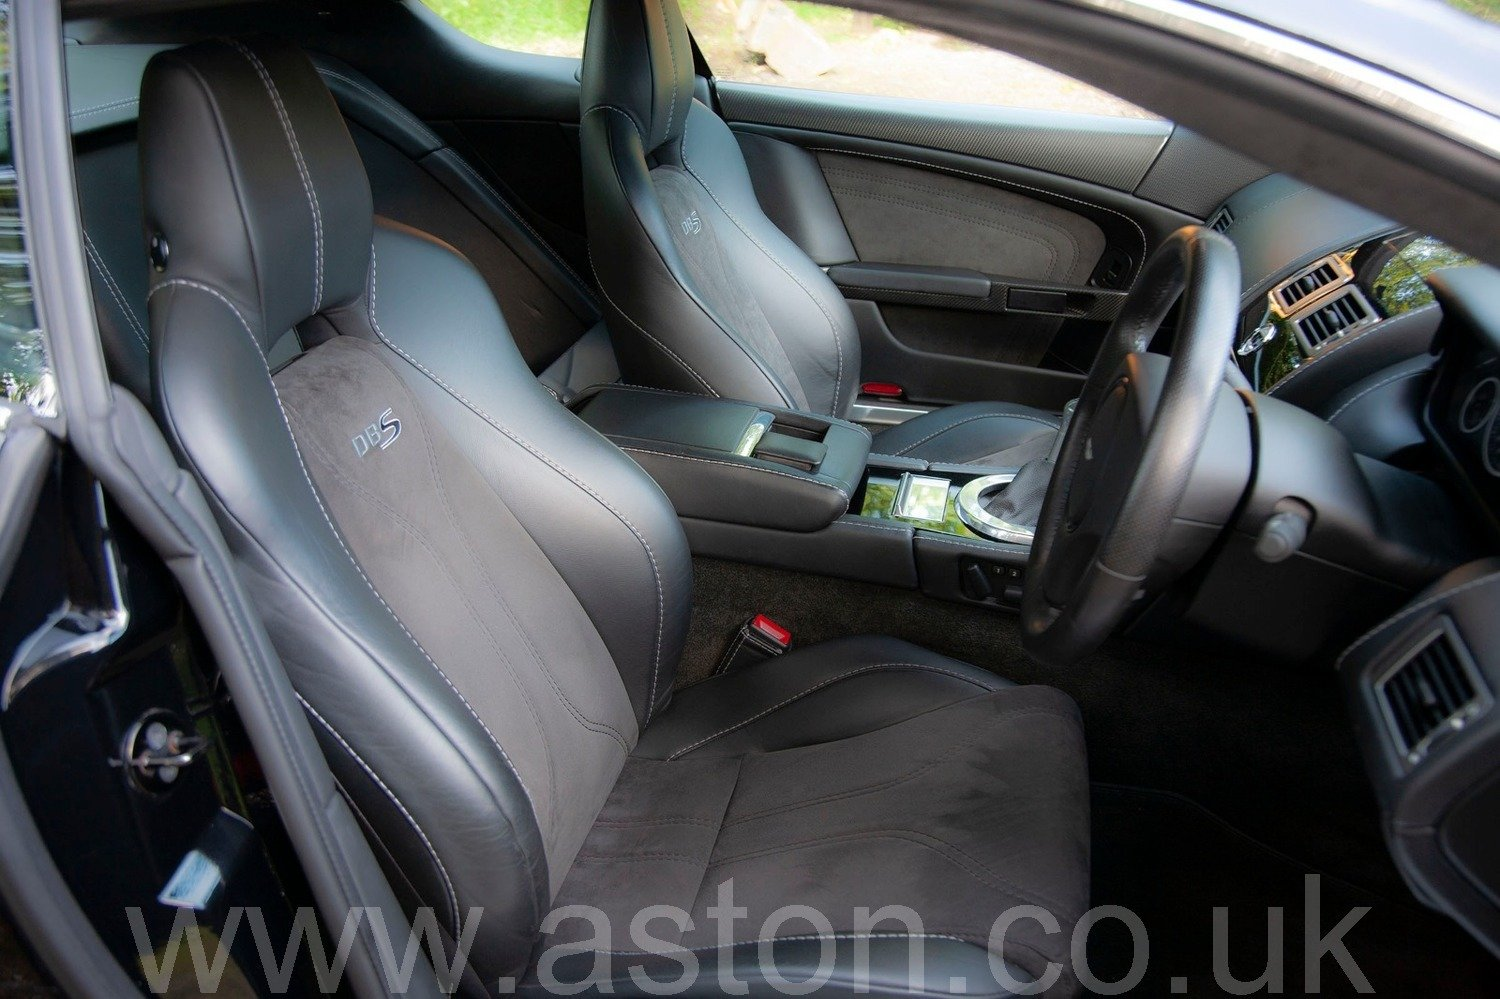 Aston Martin DBS V12 Manual 2009 For Sale (picture 3 of 6)